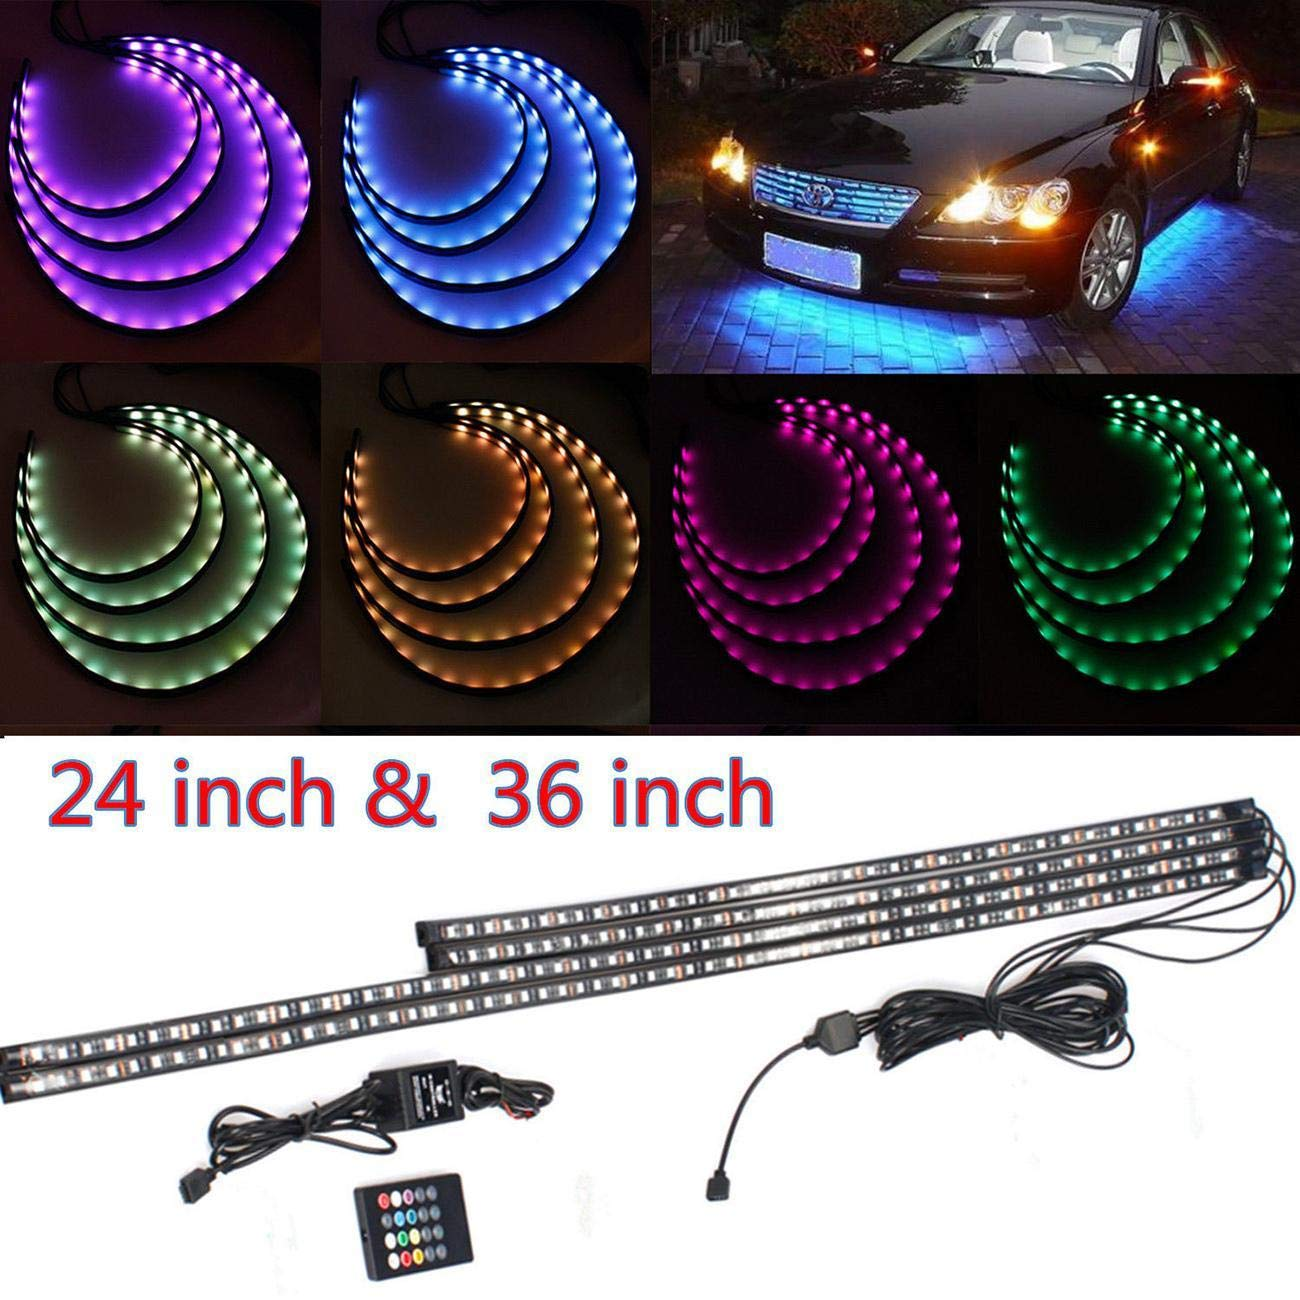 POWLAB Undercar Light, 4 in 1 Car LED Neon Glow Light Atmosphere Decorative Light Strip, Underbody System Waterproof Tube RGB 7 Color Underglow Light Strips with Remote Control